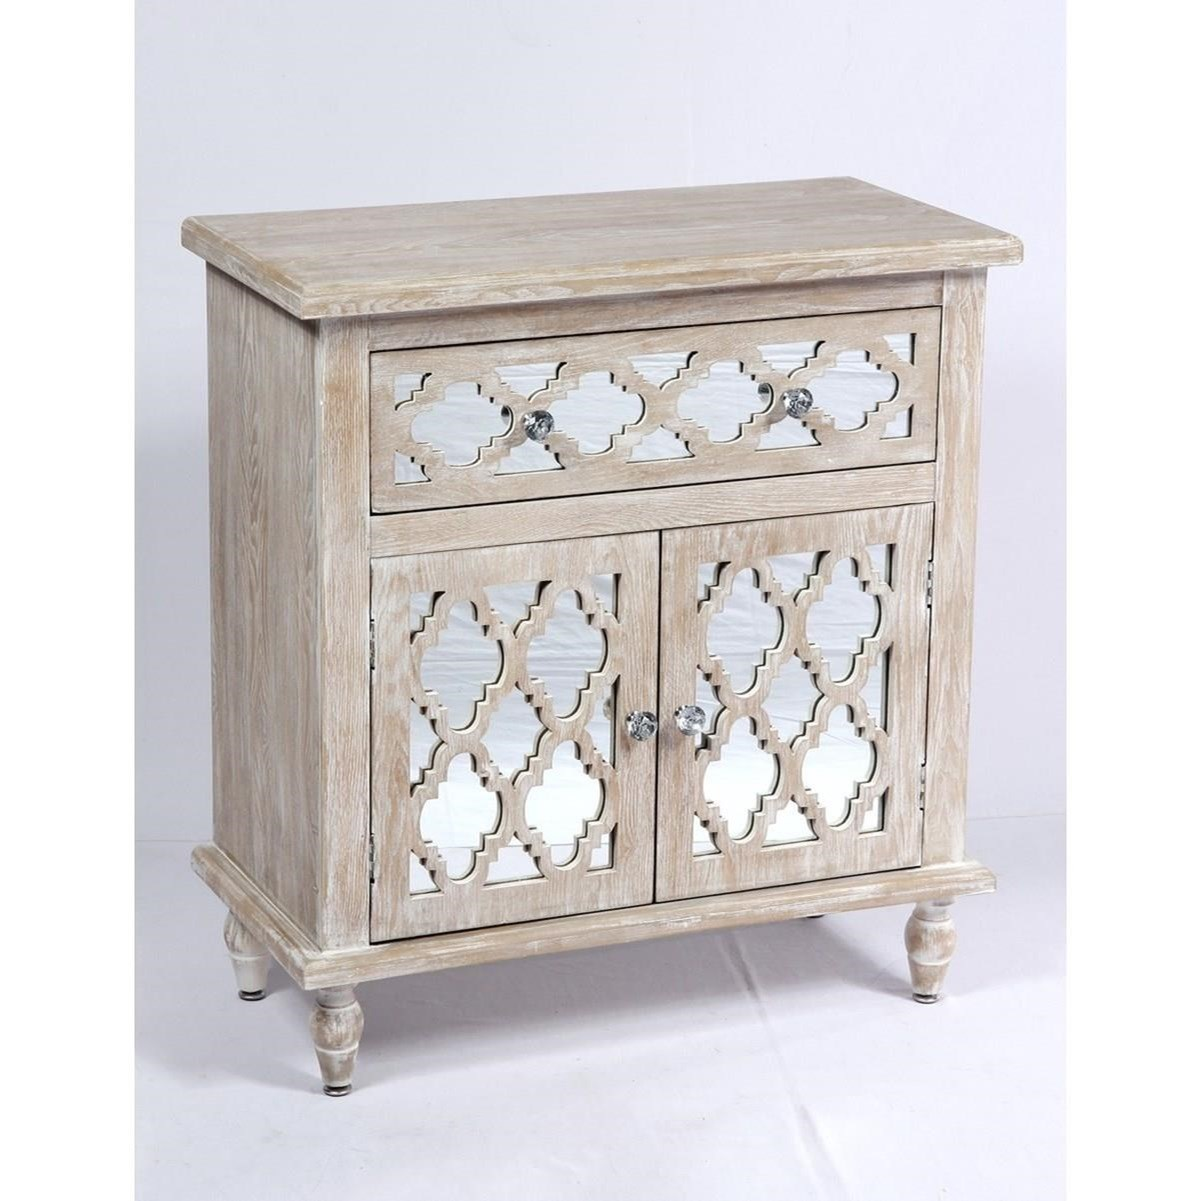 Canterwood 1 Drawer 2 Door Accent Cabinet by Emerald at Northeast Factory Direct